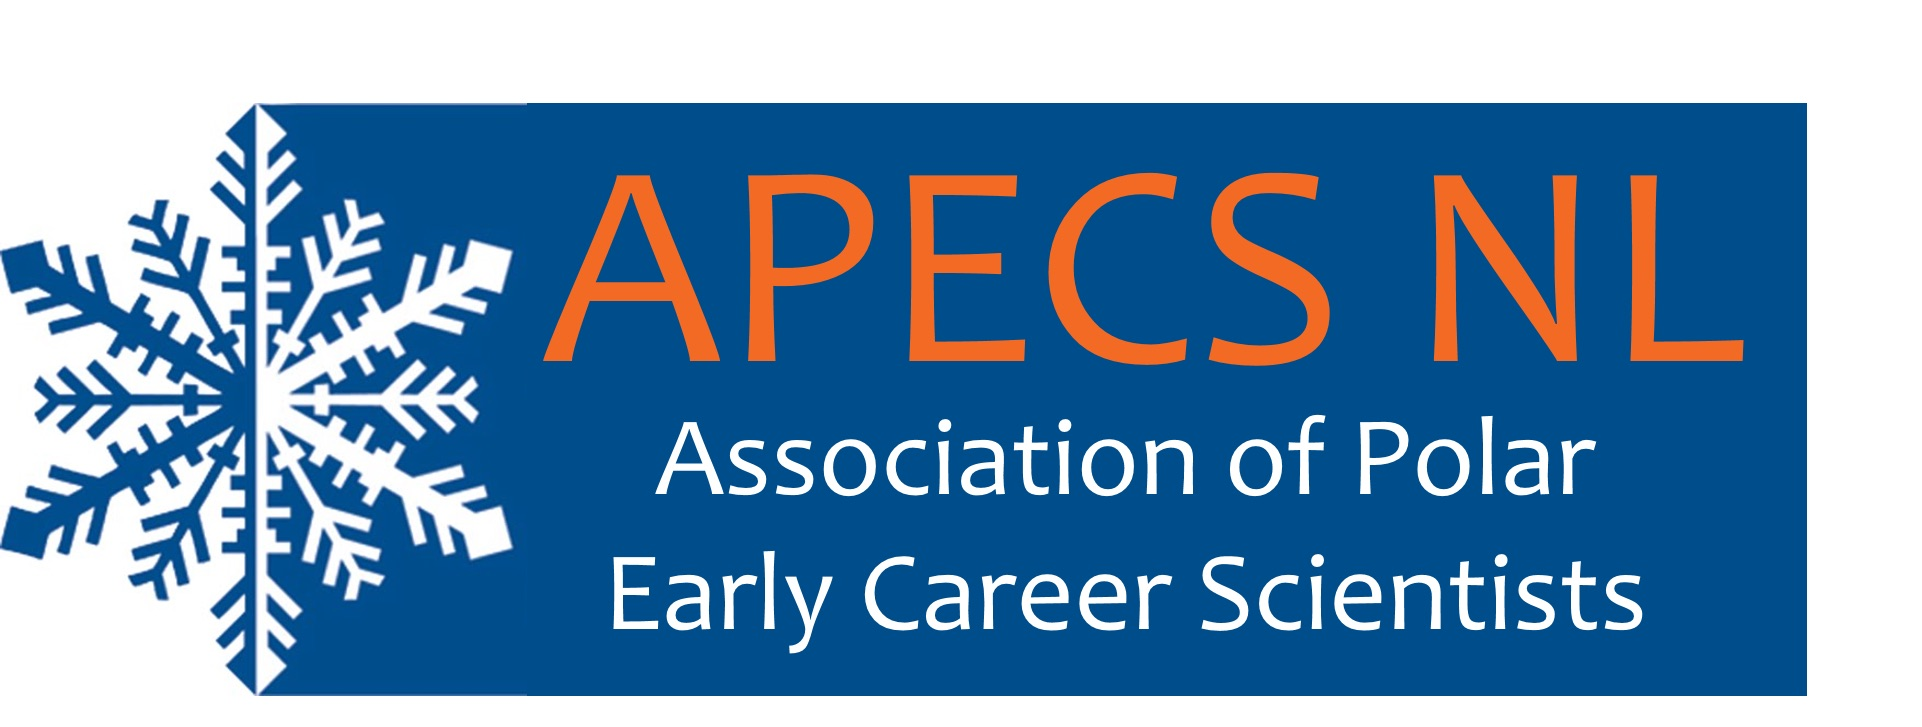 NLAPECS LOGO 1 copy